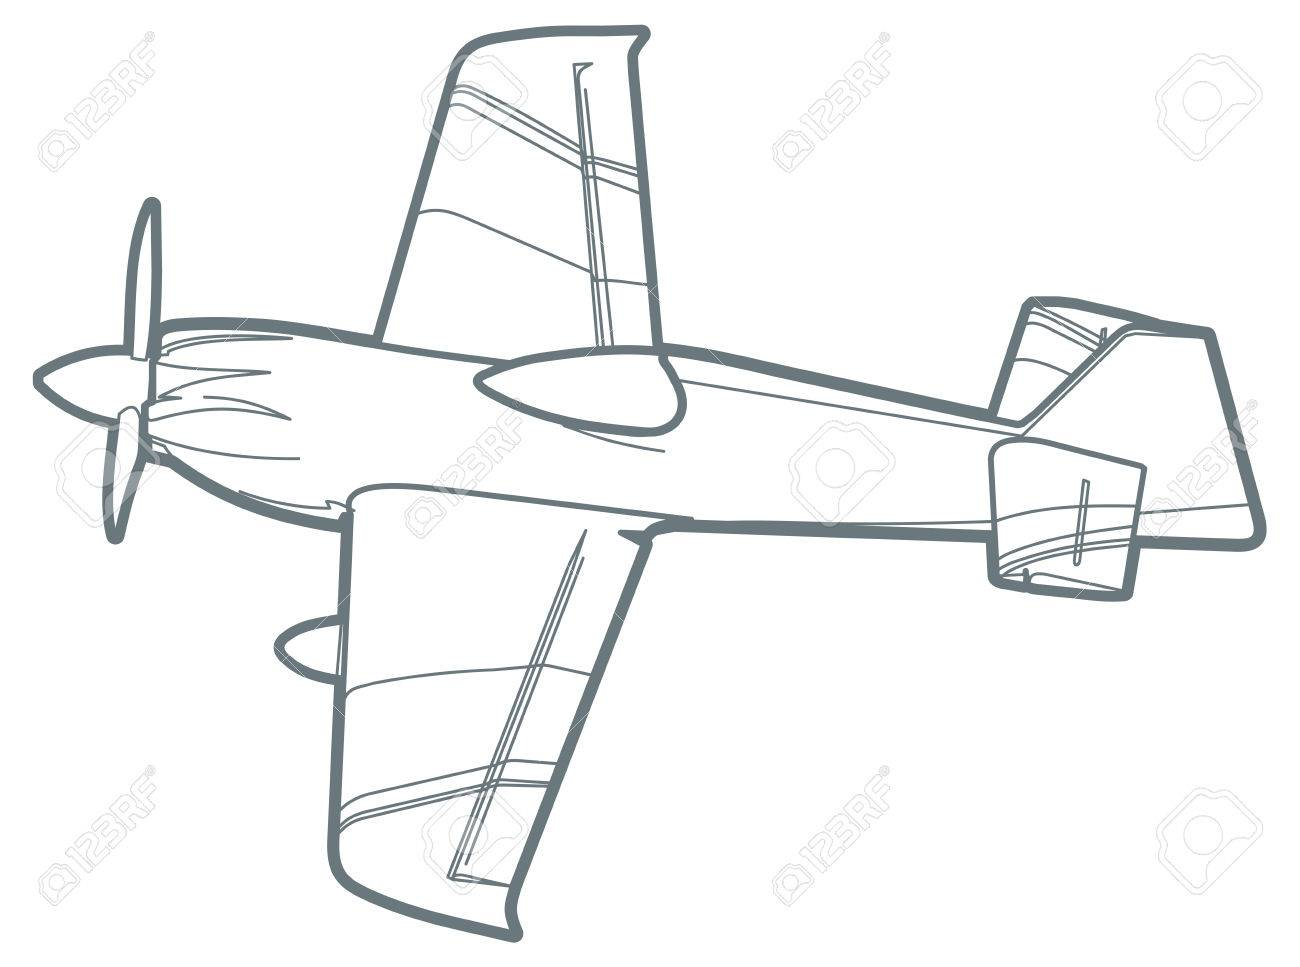 1300x967 Outline Sport Plane With Propeller. Small Airplane Stock Photo